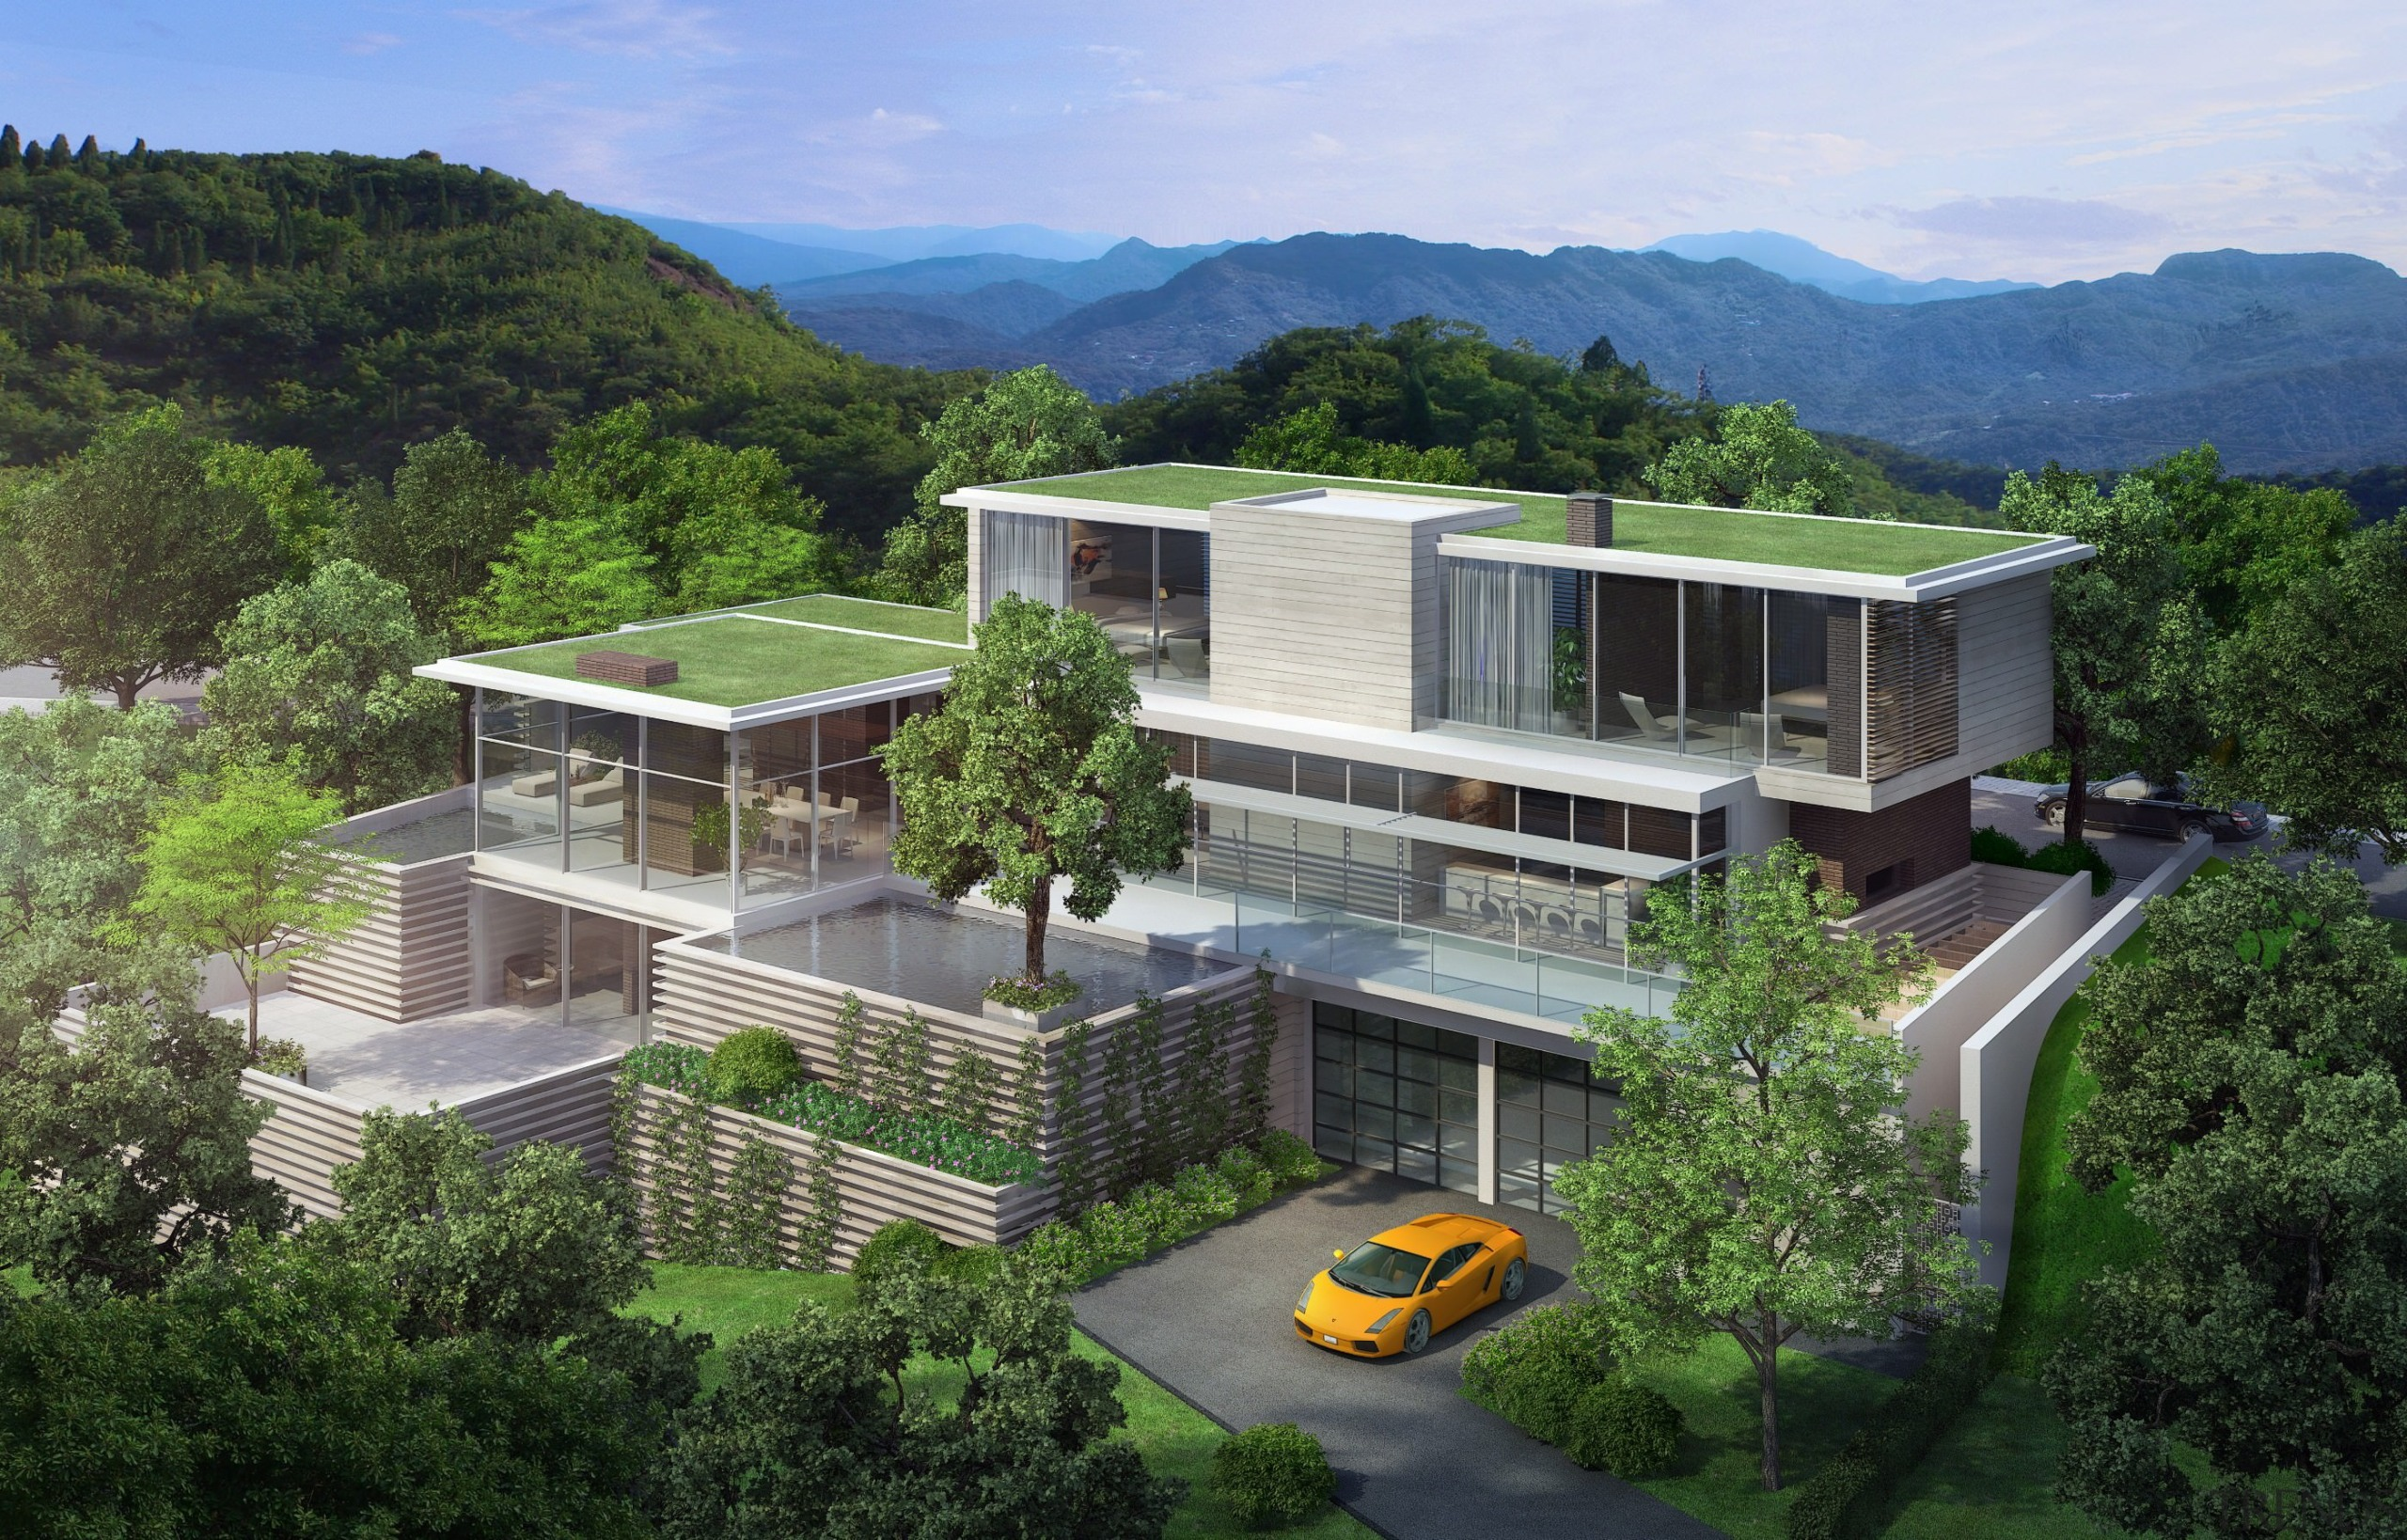 Steven Harris Rendering - Premia - architecture | architecture, bird's eye view, condominium, cottage, elevation, estate, home, house, mixed use, property, real estate, residential area, villa, green